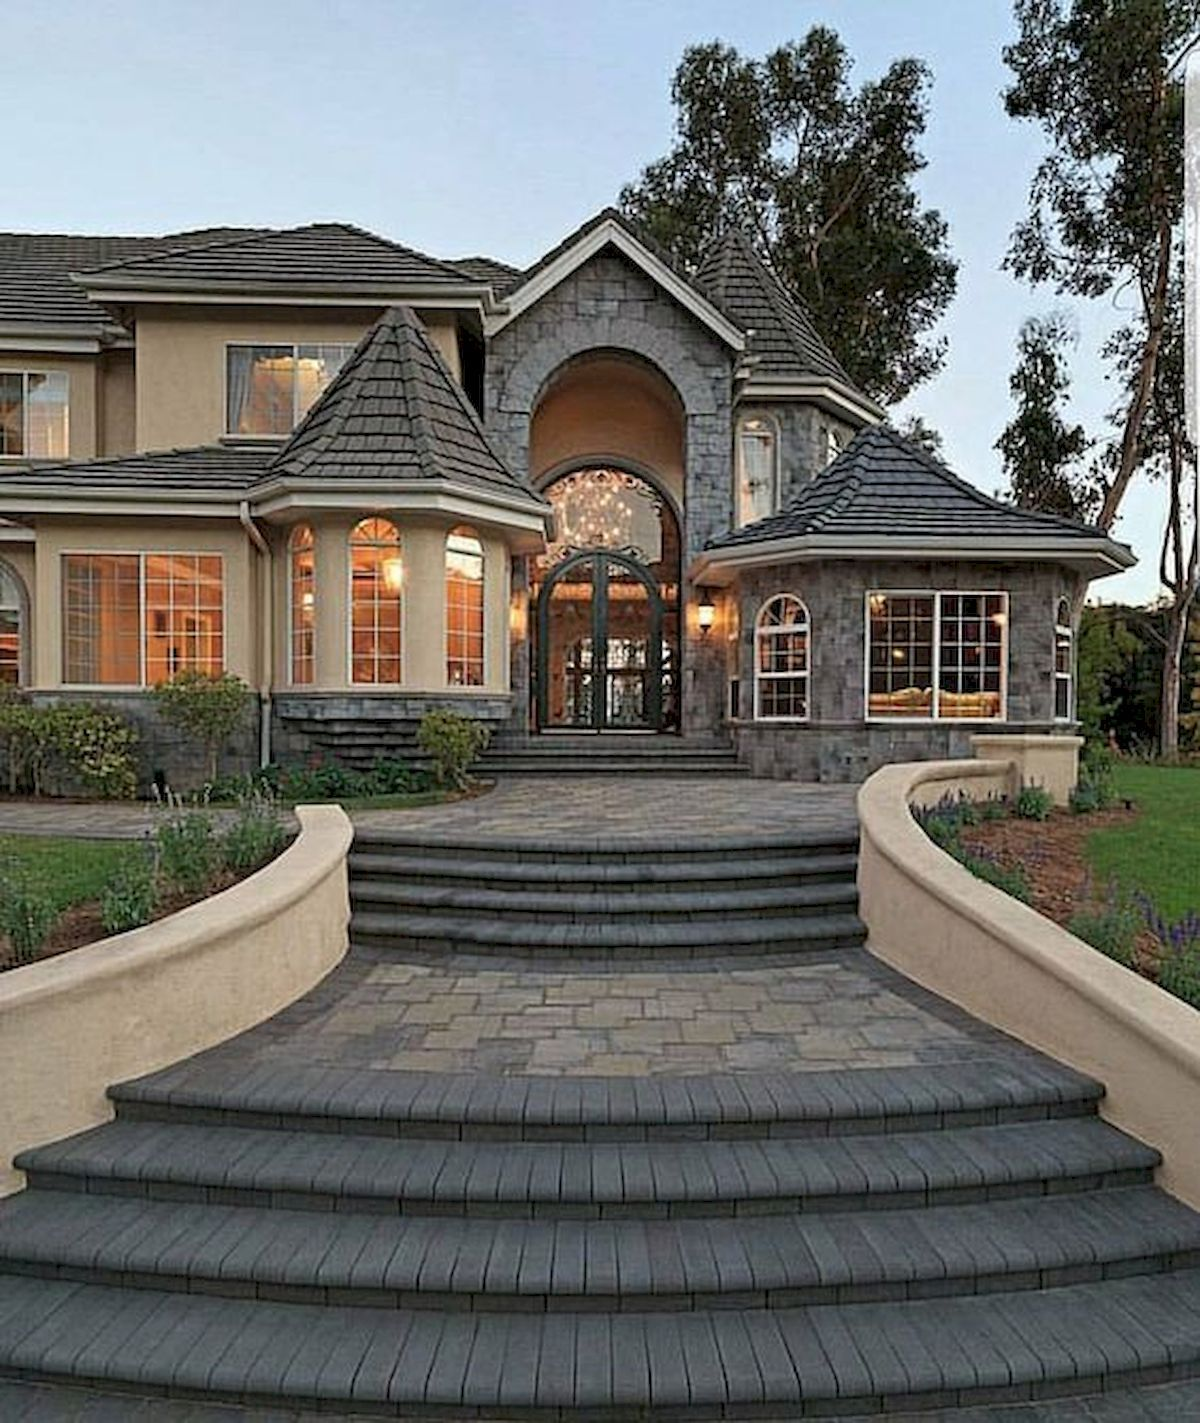 8822ddda5334724d547368b26442b4f9 - Better Homes And Gardens Home Designer Suite 6.0